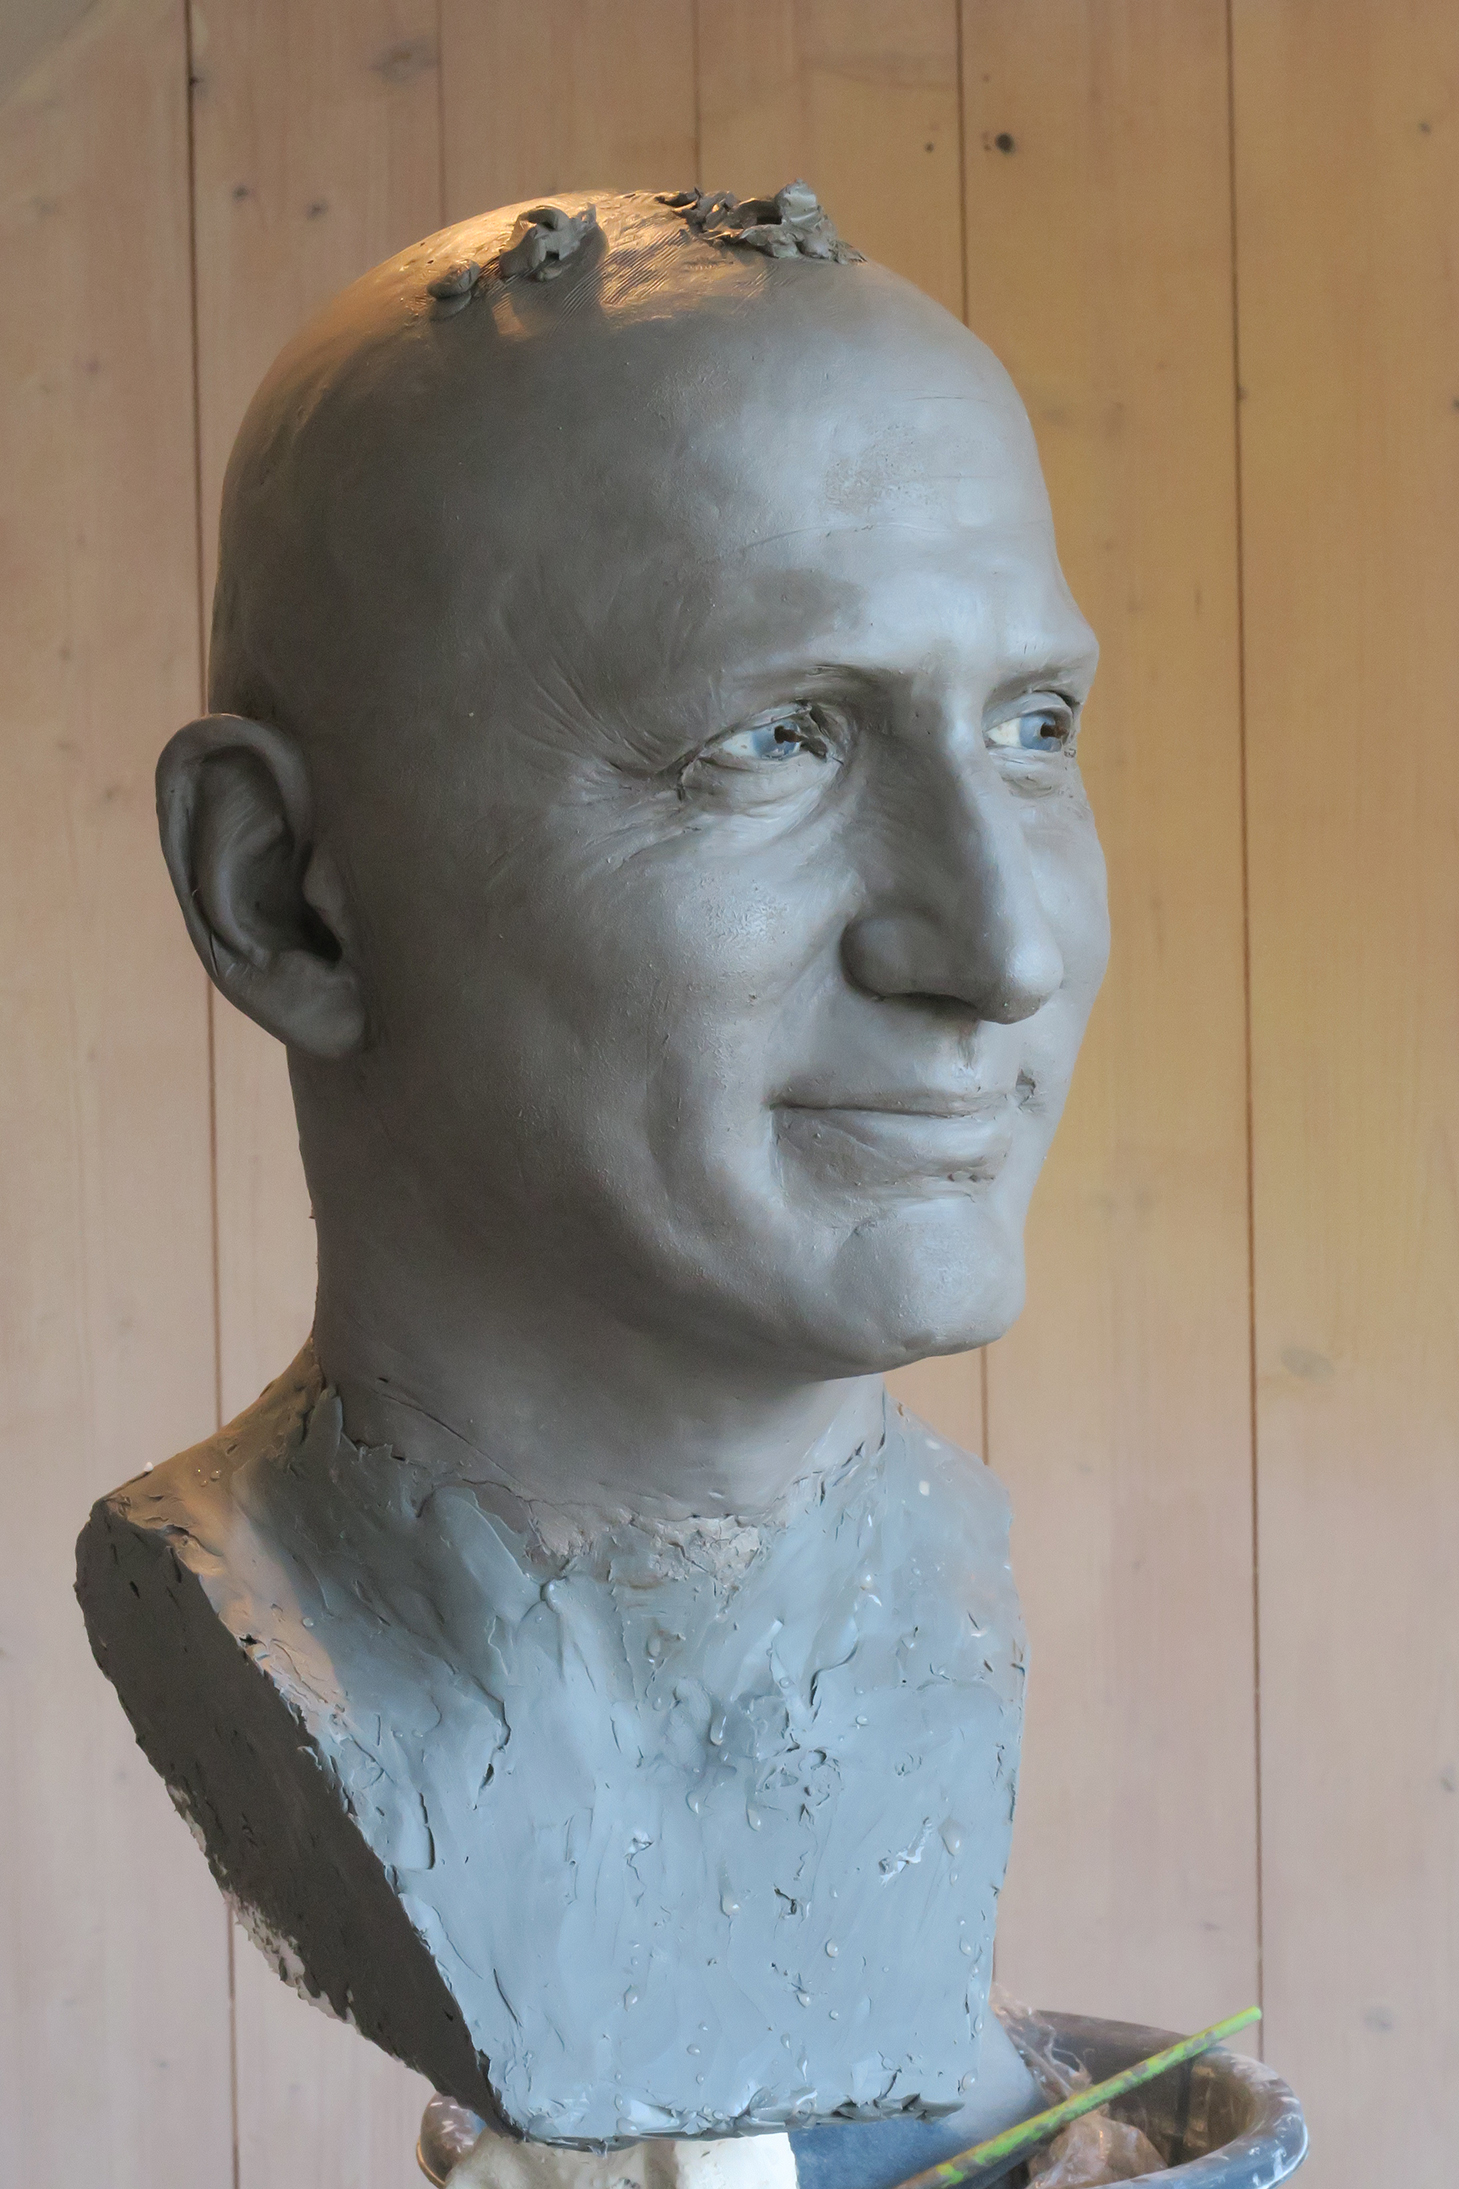 Justin Trudeau - Clay sculpture by Eric Saint Chaffray - Credit Musée Grévin